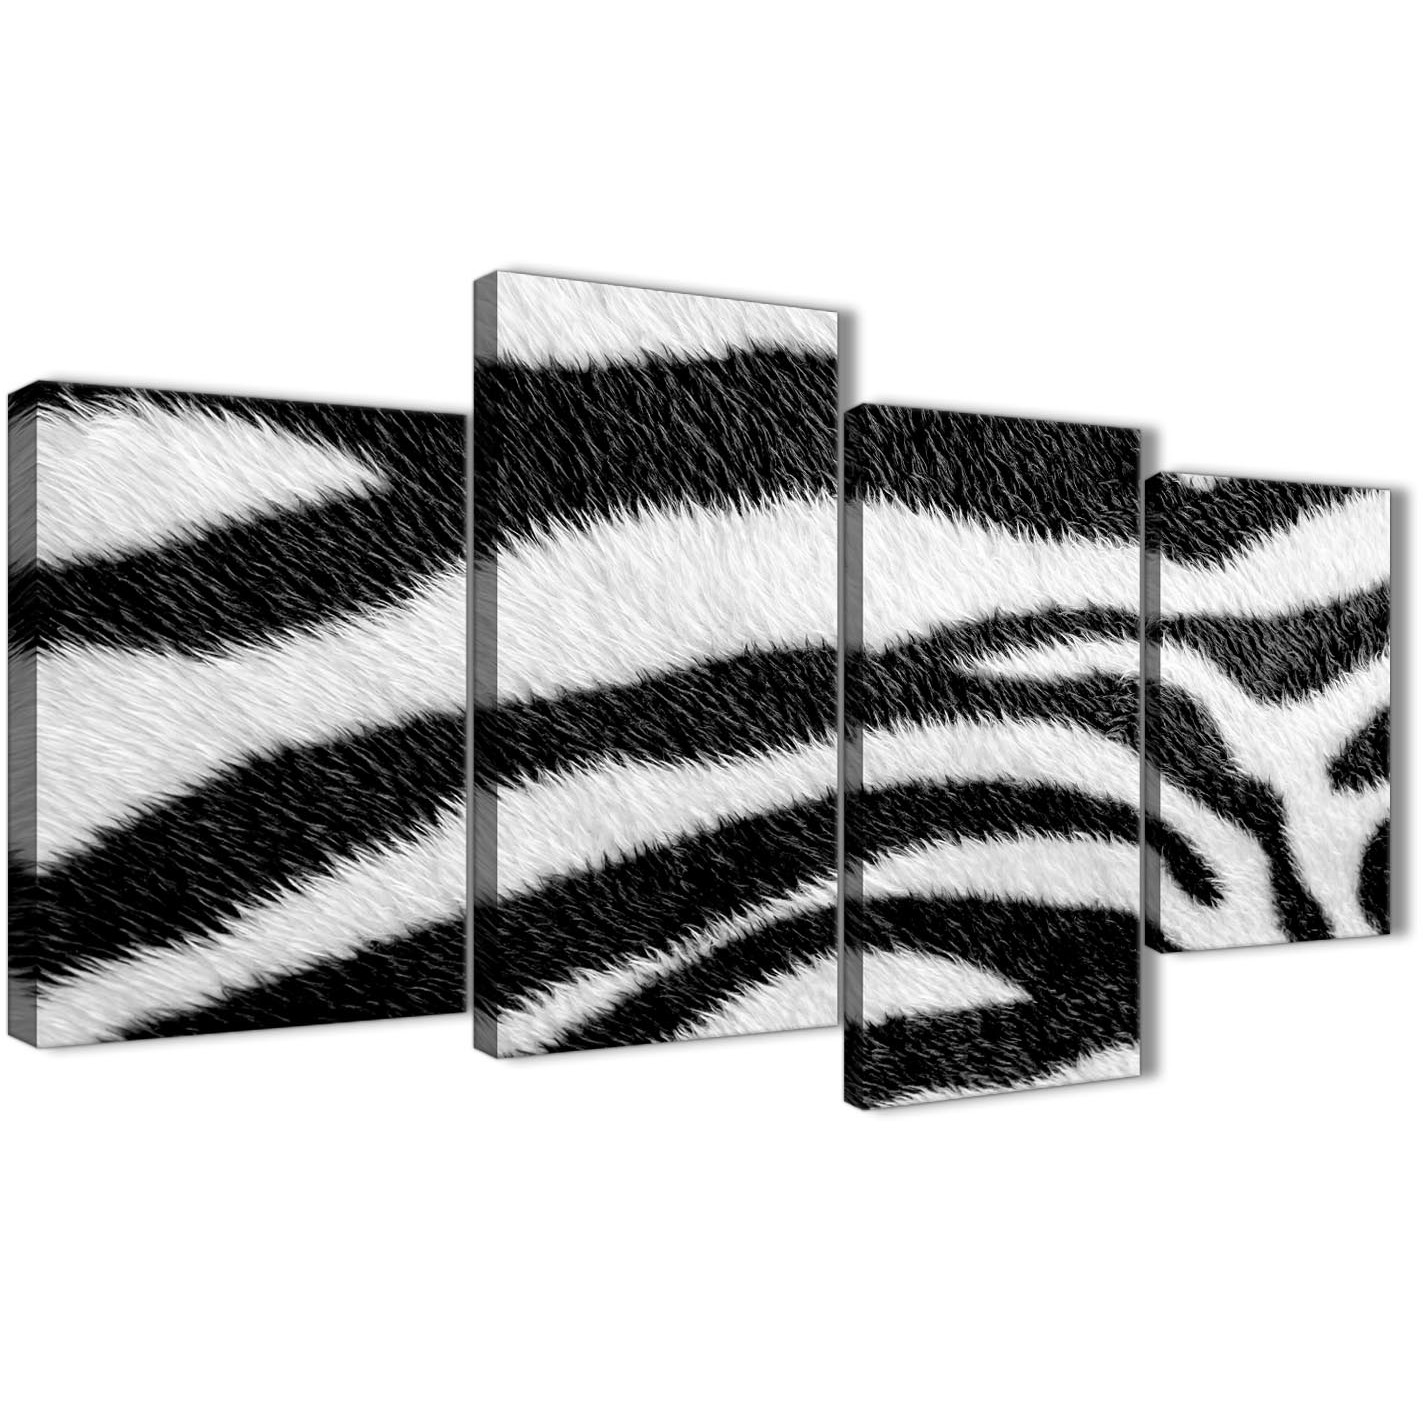 Large Black White Zebra Animal Print Abstract Bedroom Canvas Pictures Decor 4471 130cm Set Of Prints